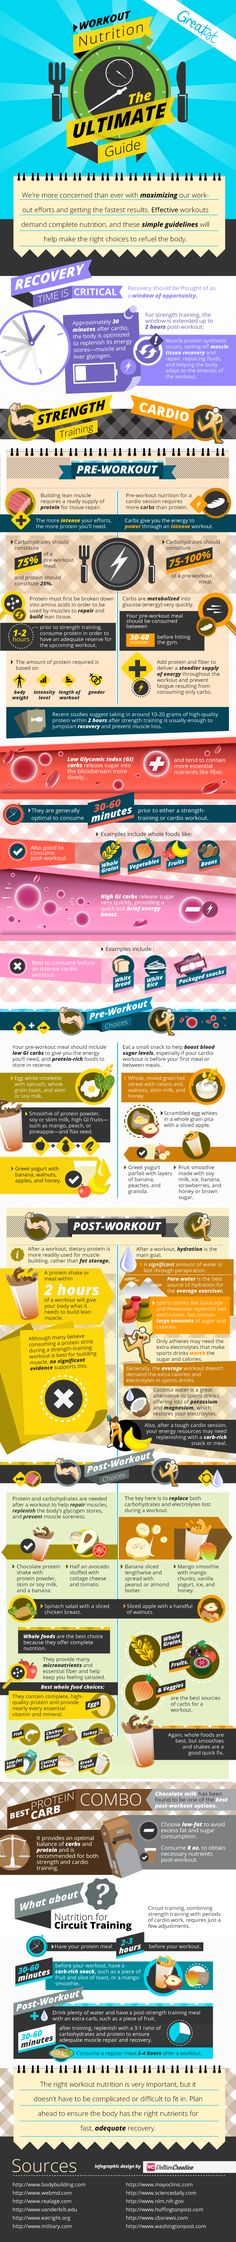 The Complete Guide to Workout Nutrition #Infographic